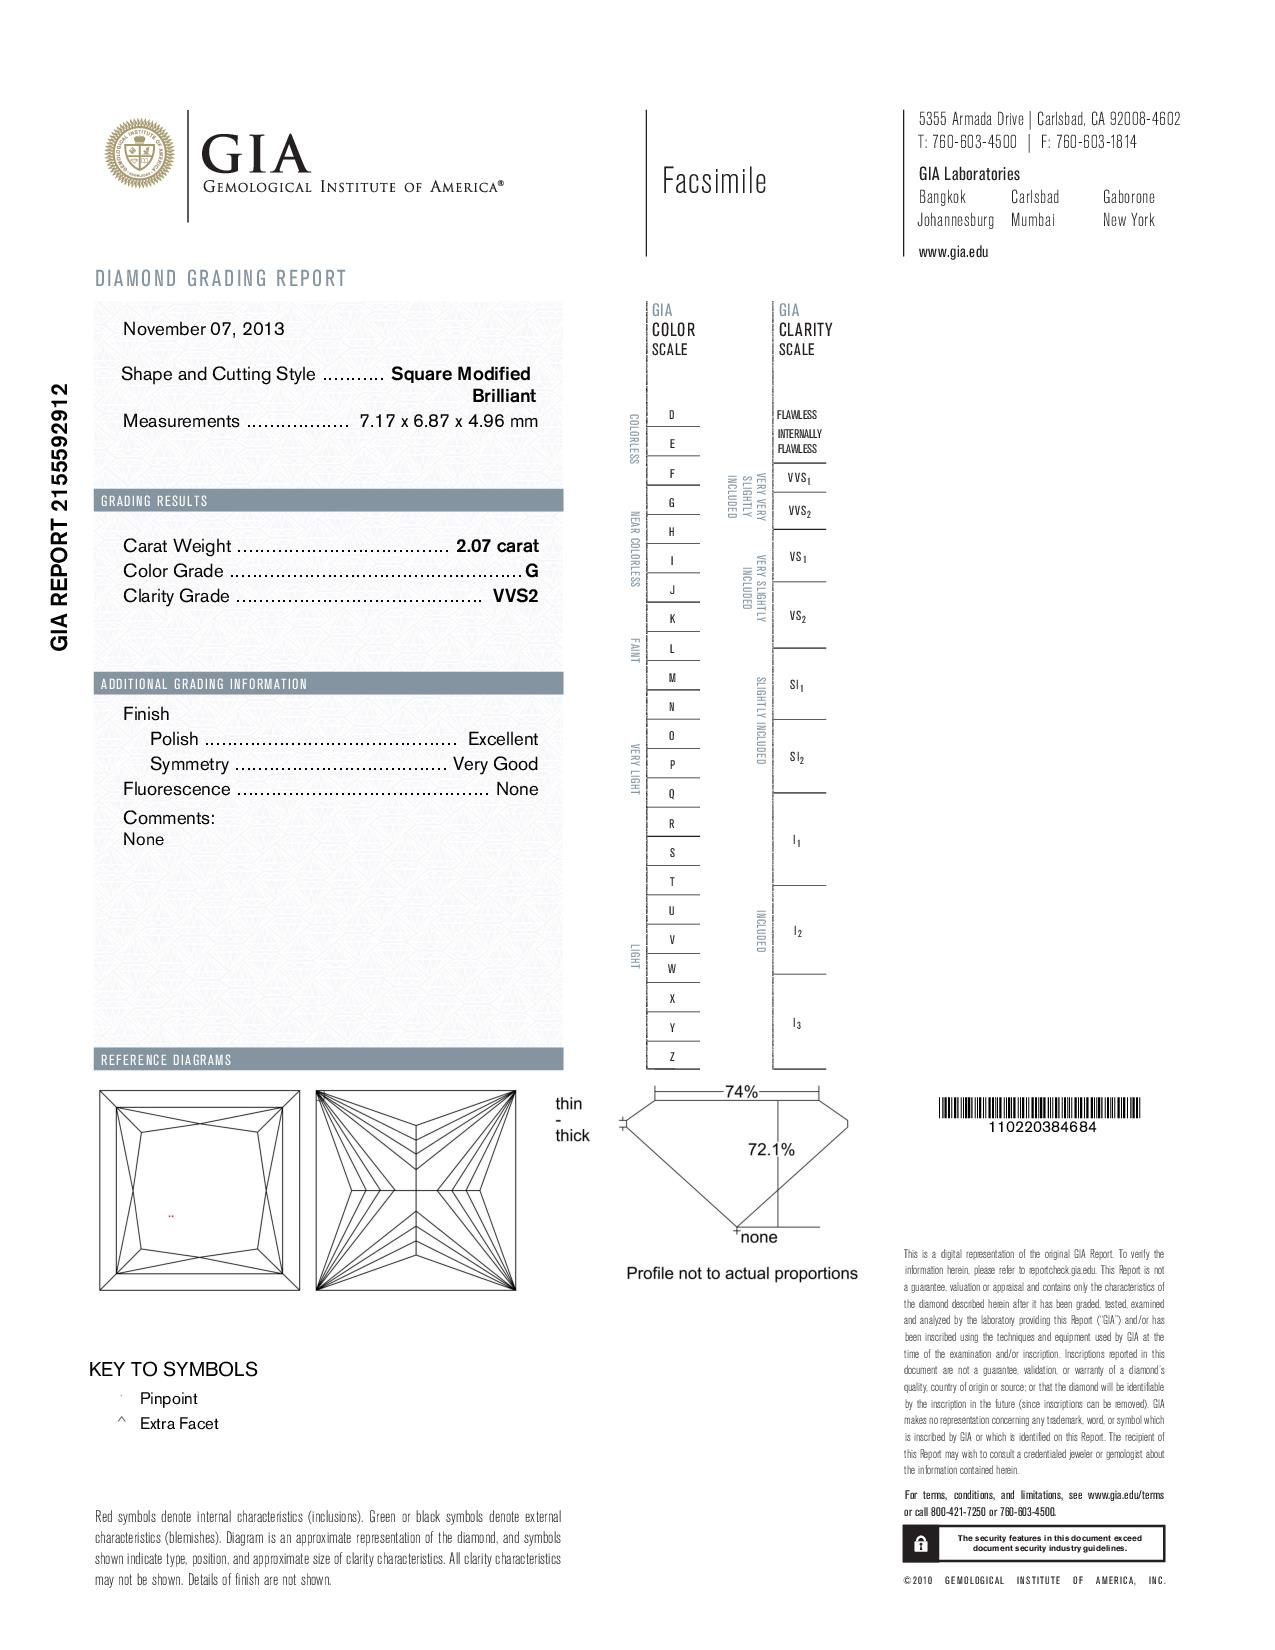 This is a 2.07 carat princess shape, G color, VVS2 clarity natural diamond accompanied by a GIA grading report.